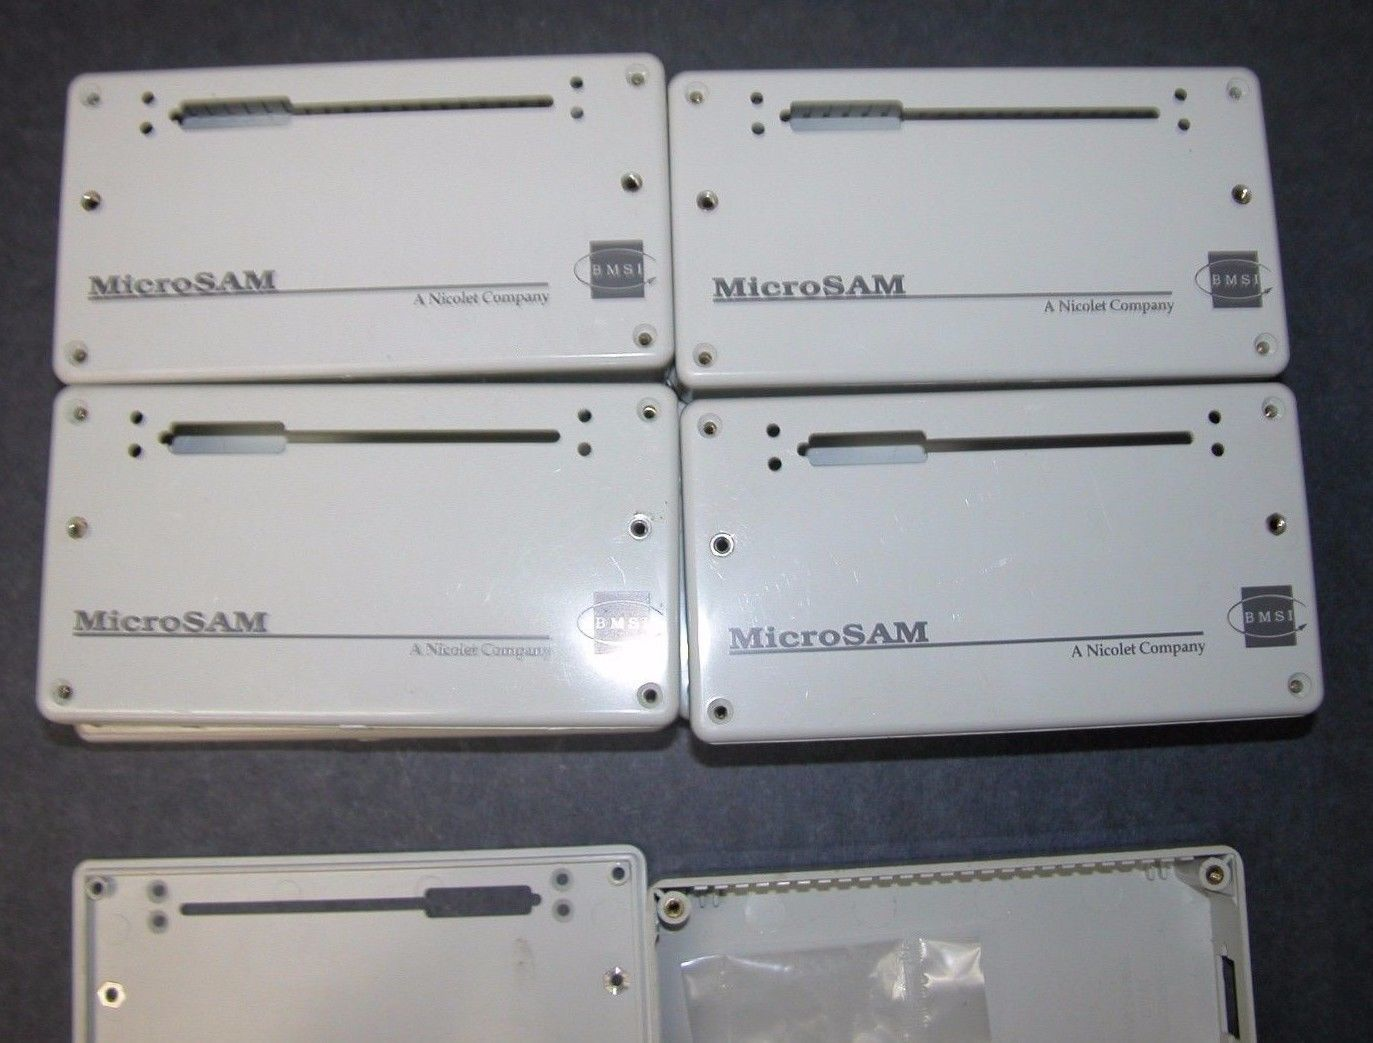 Lot 9 BMSI Nicolet MicroSAM EEG Enclosures, Unused